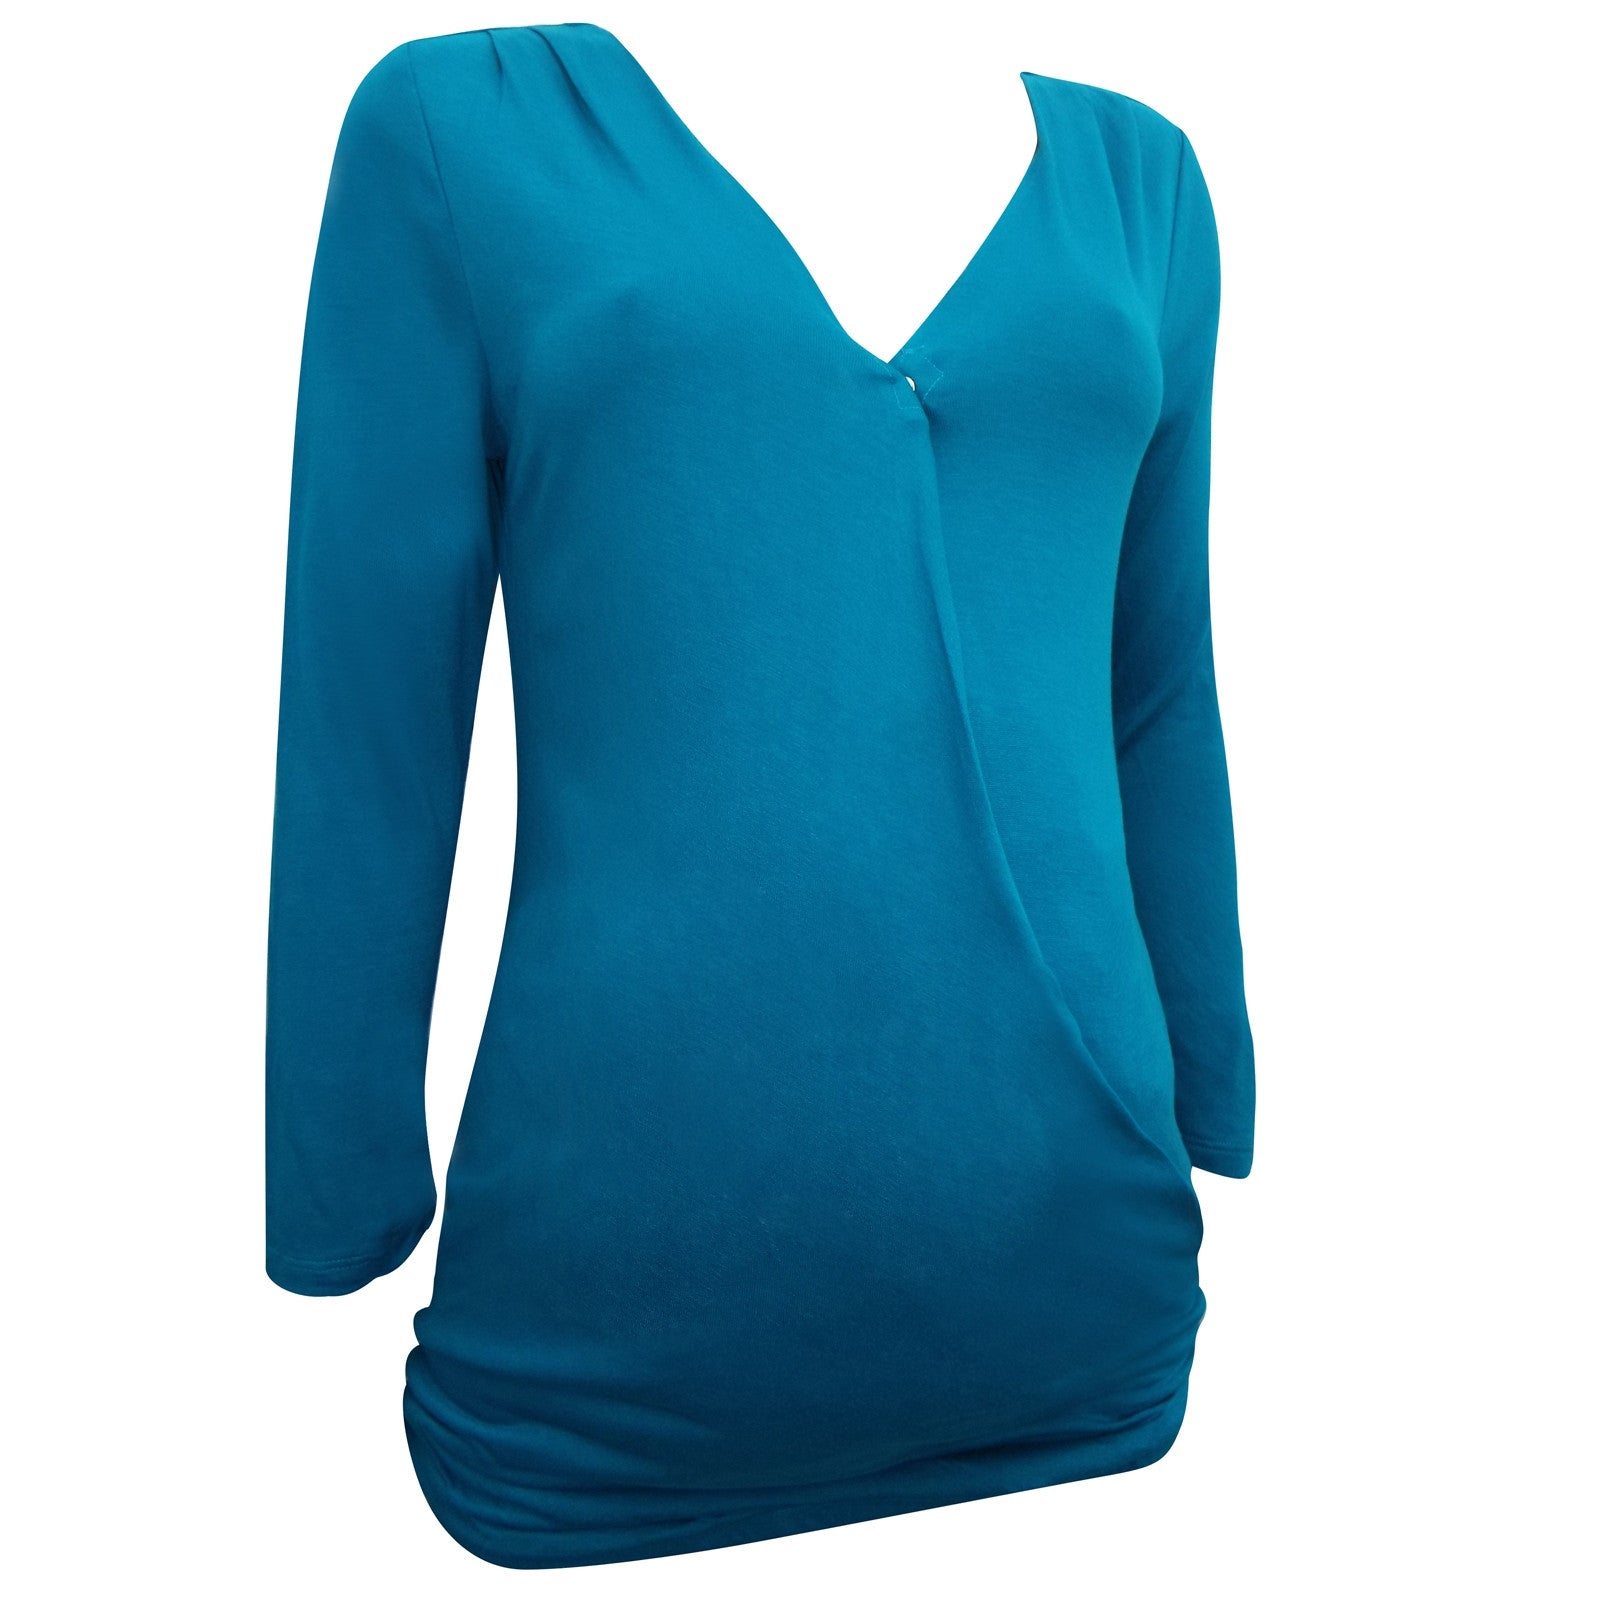 Sebix - Turquoise Gap 3/4 Sleeve Wrap Popper Maternity Breastfeeding Top